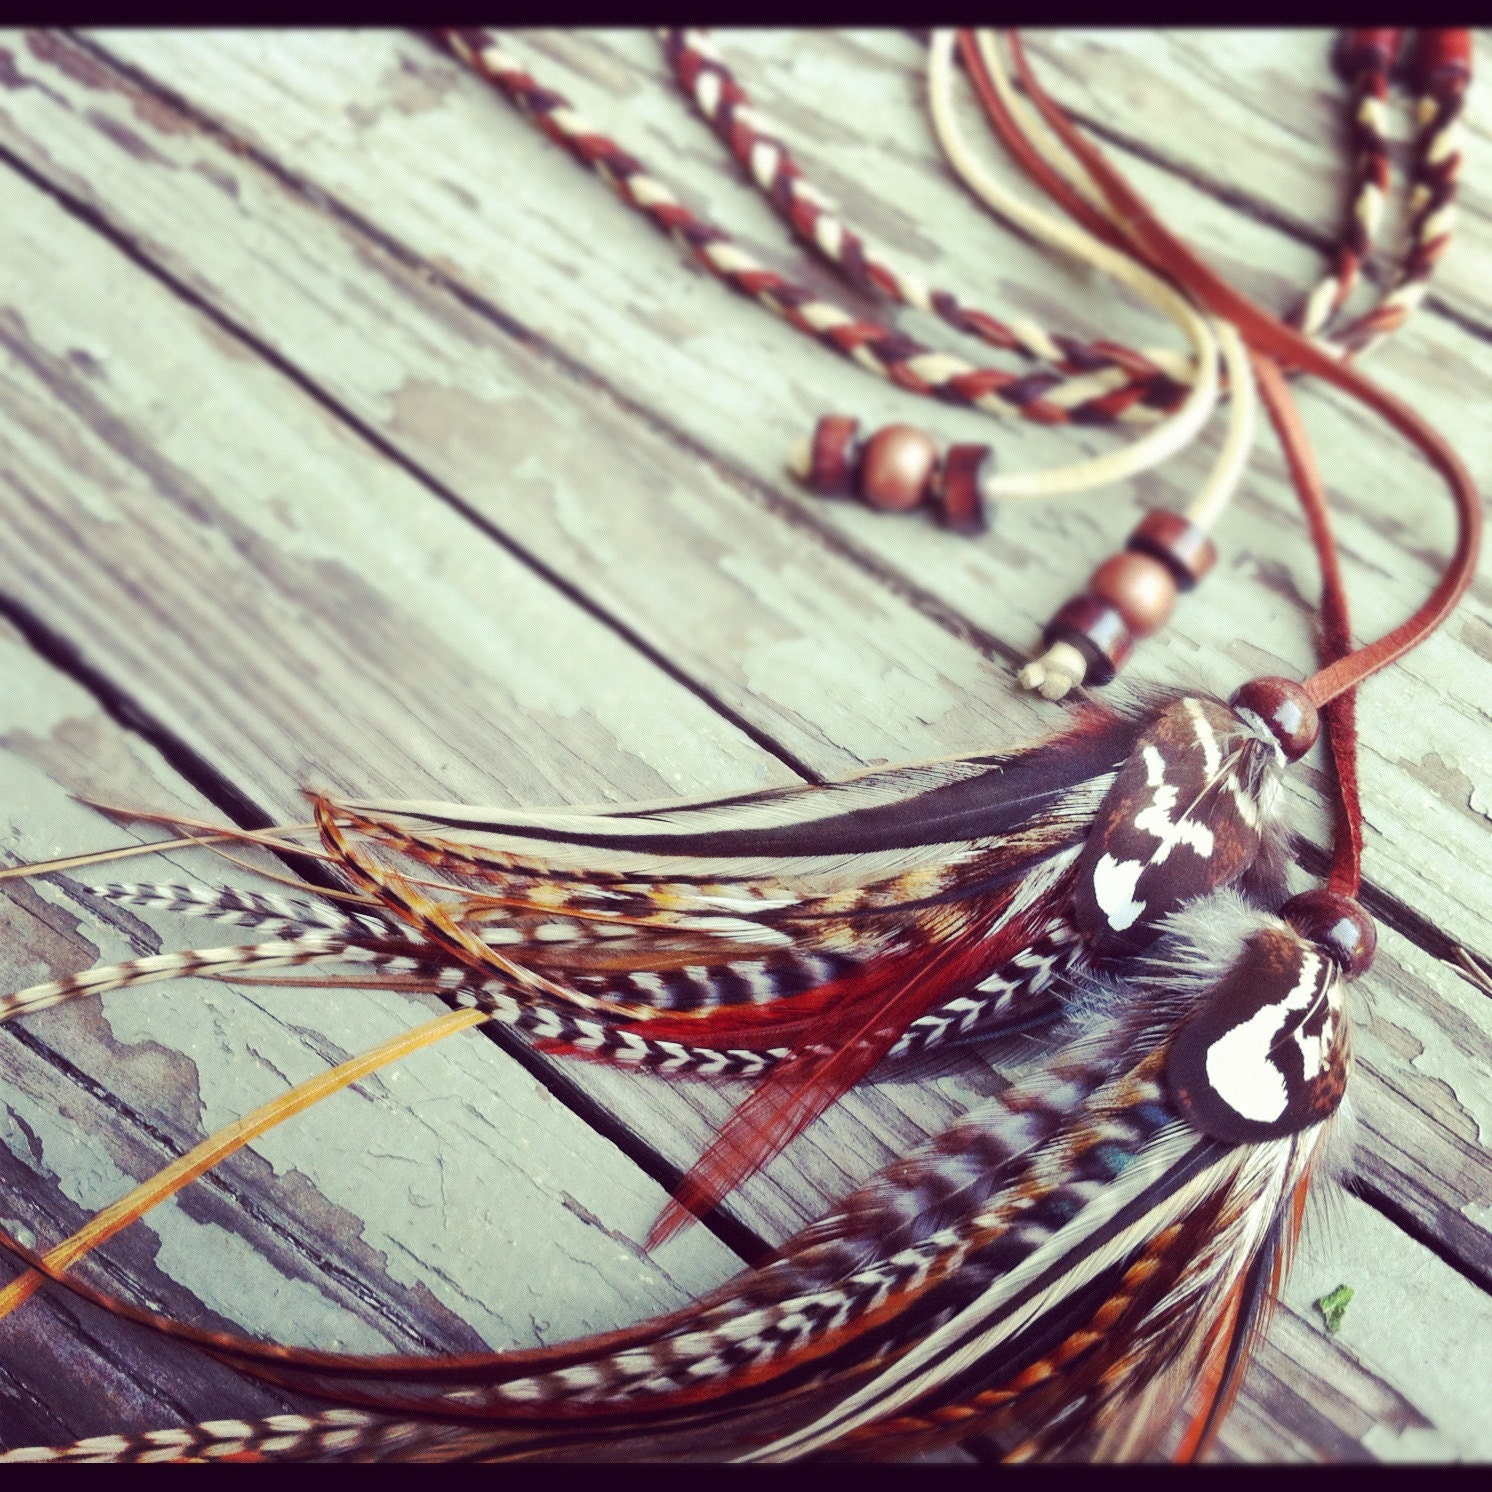 Marvelous braided leather feather headband in natural browns - bdii